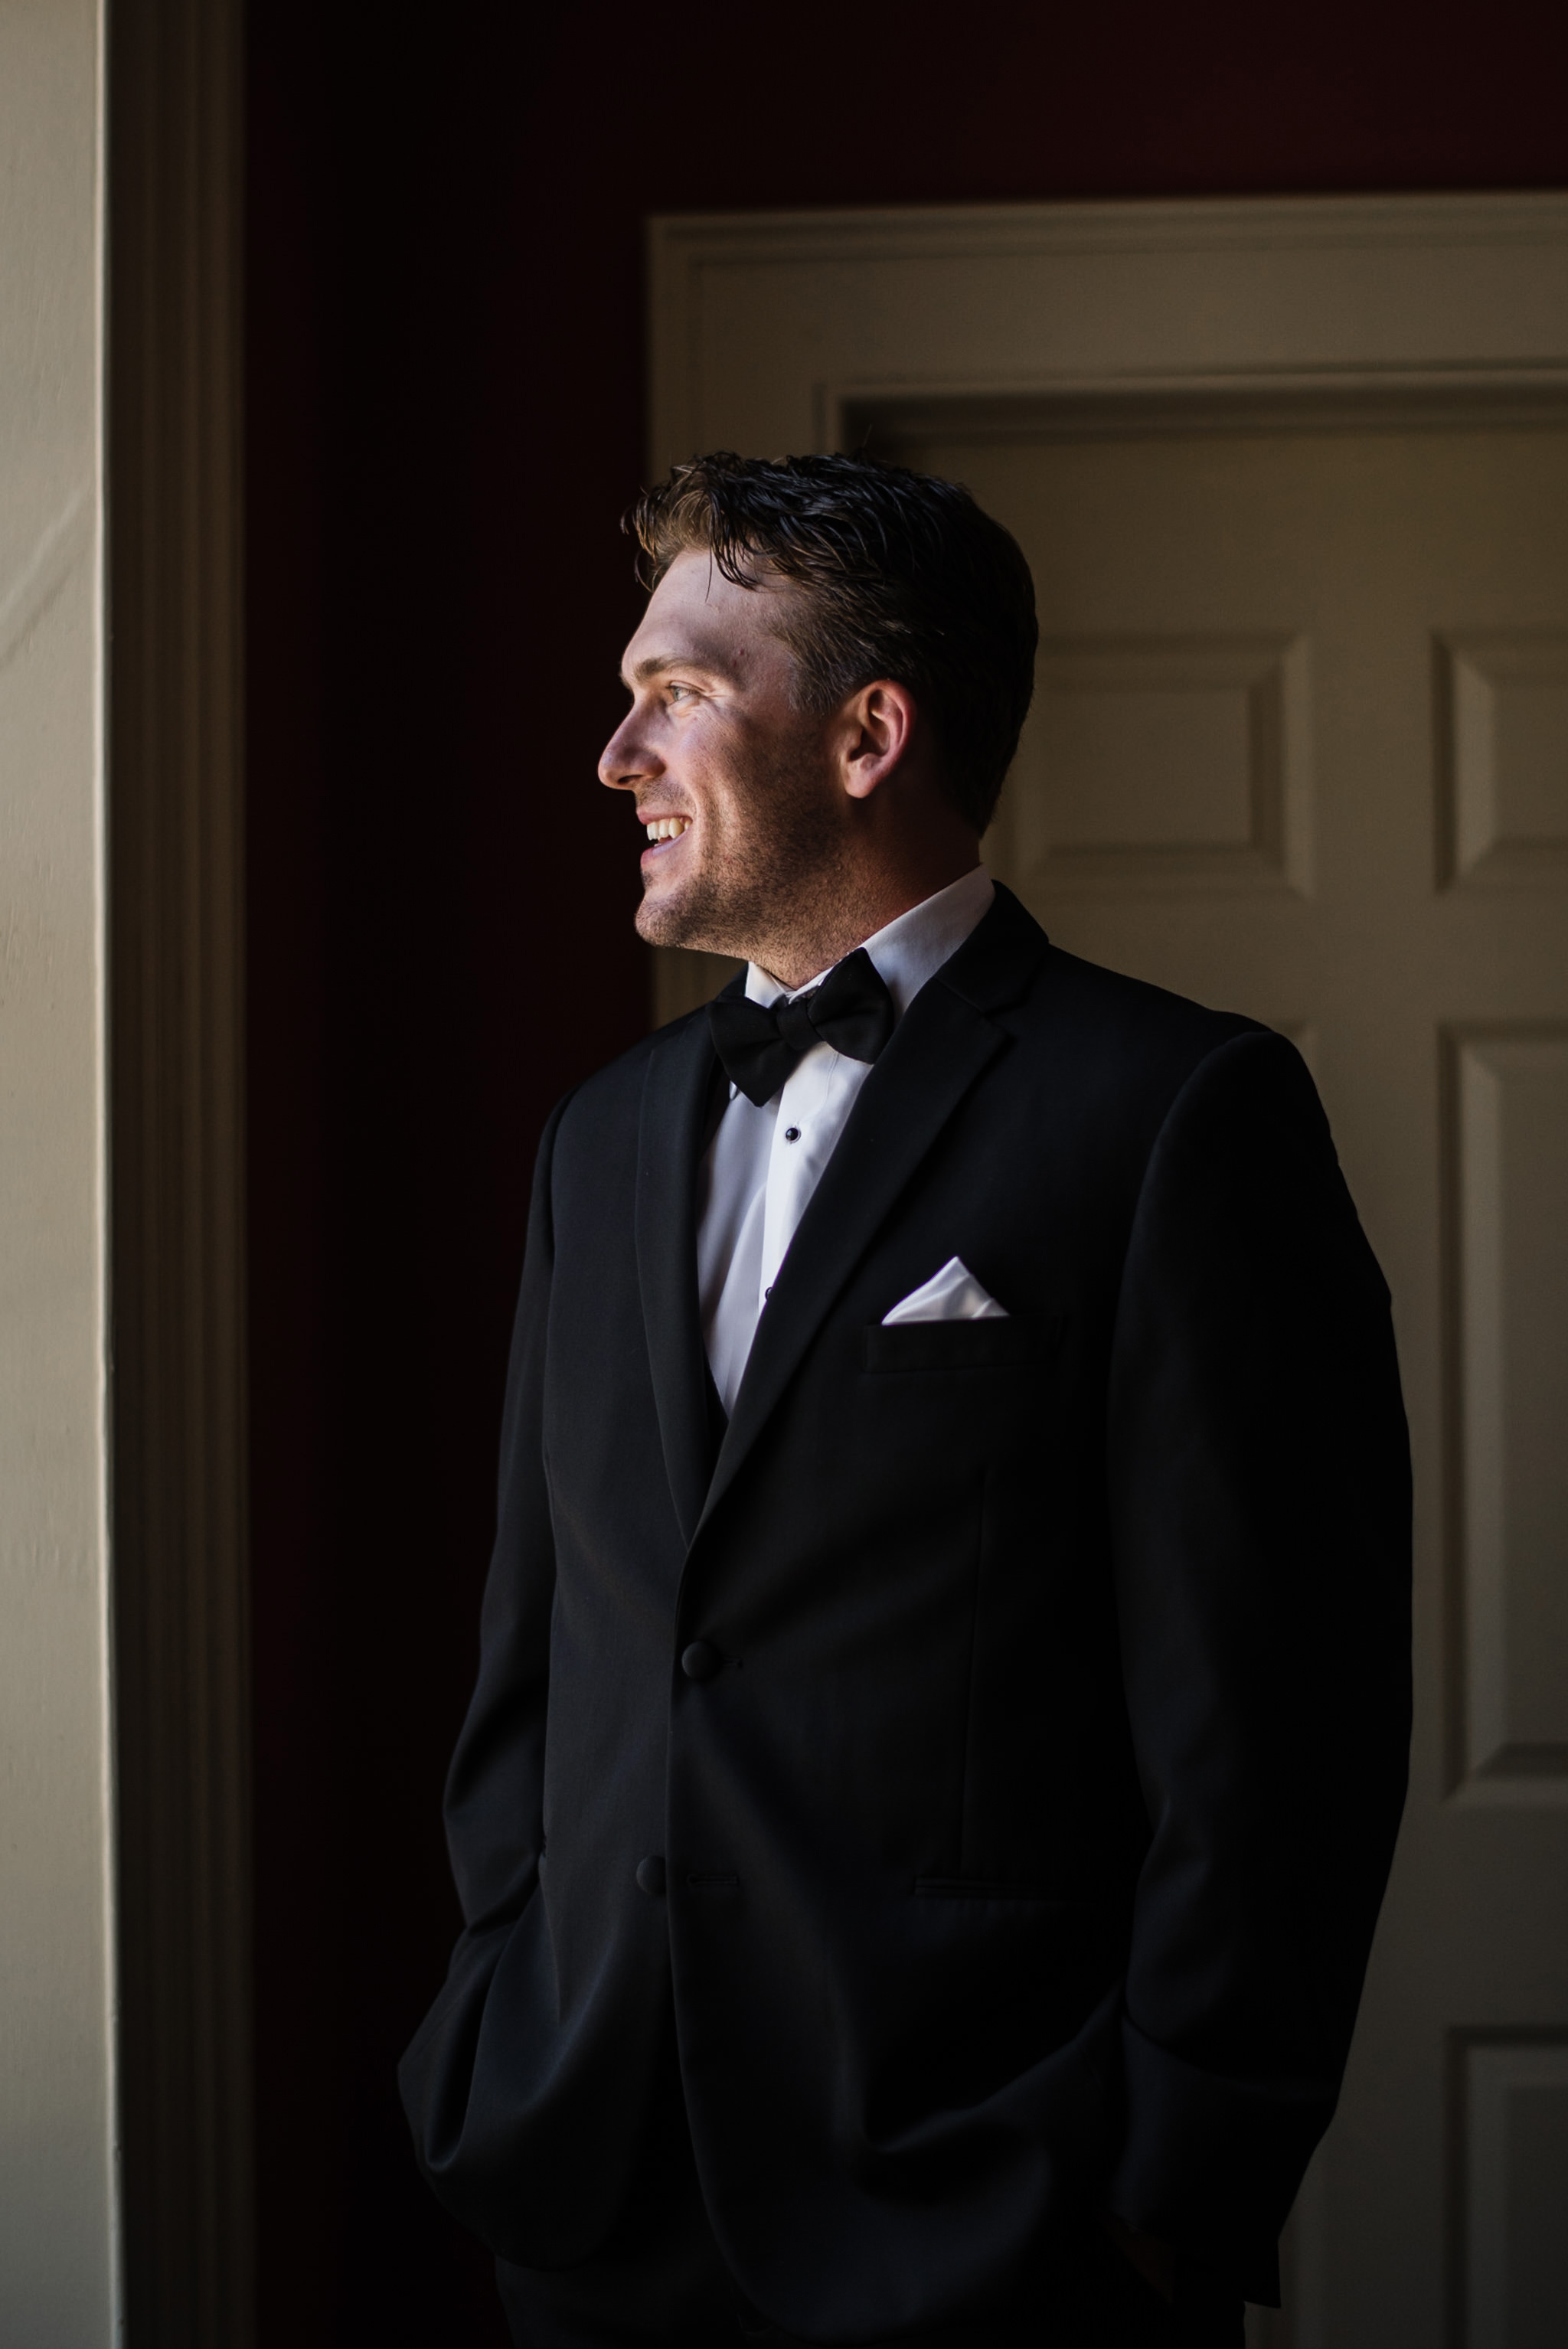 278-groom-getting-ready-the-waddell-port-hope-wedding-toronto.jpg